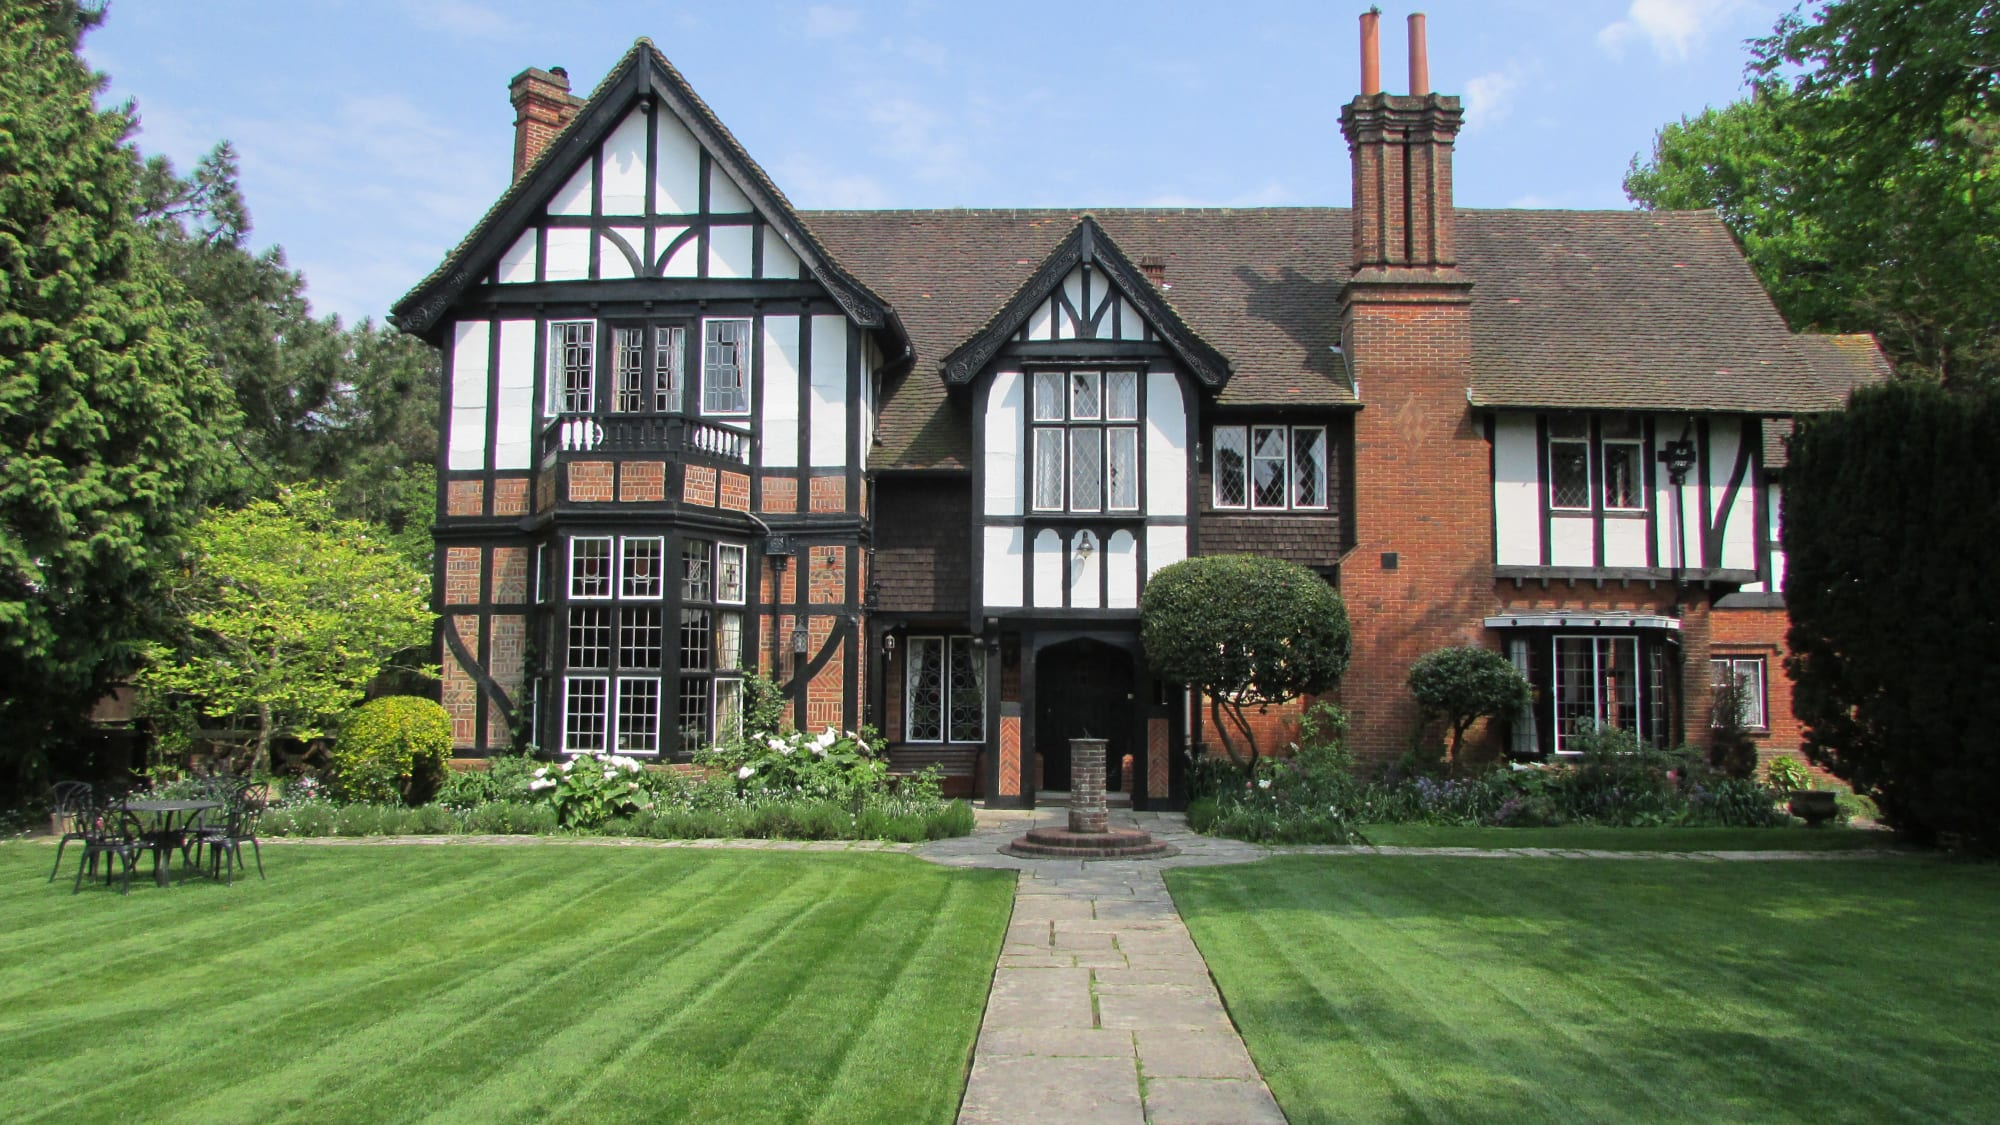 A large brick building with grass in front of a house at Tudor Grange Hotel.